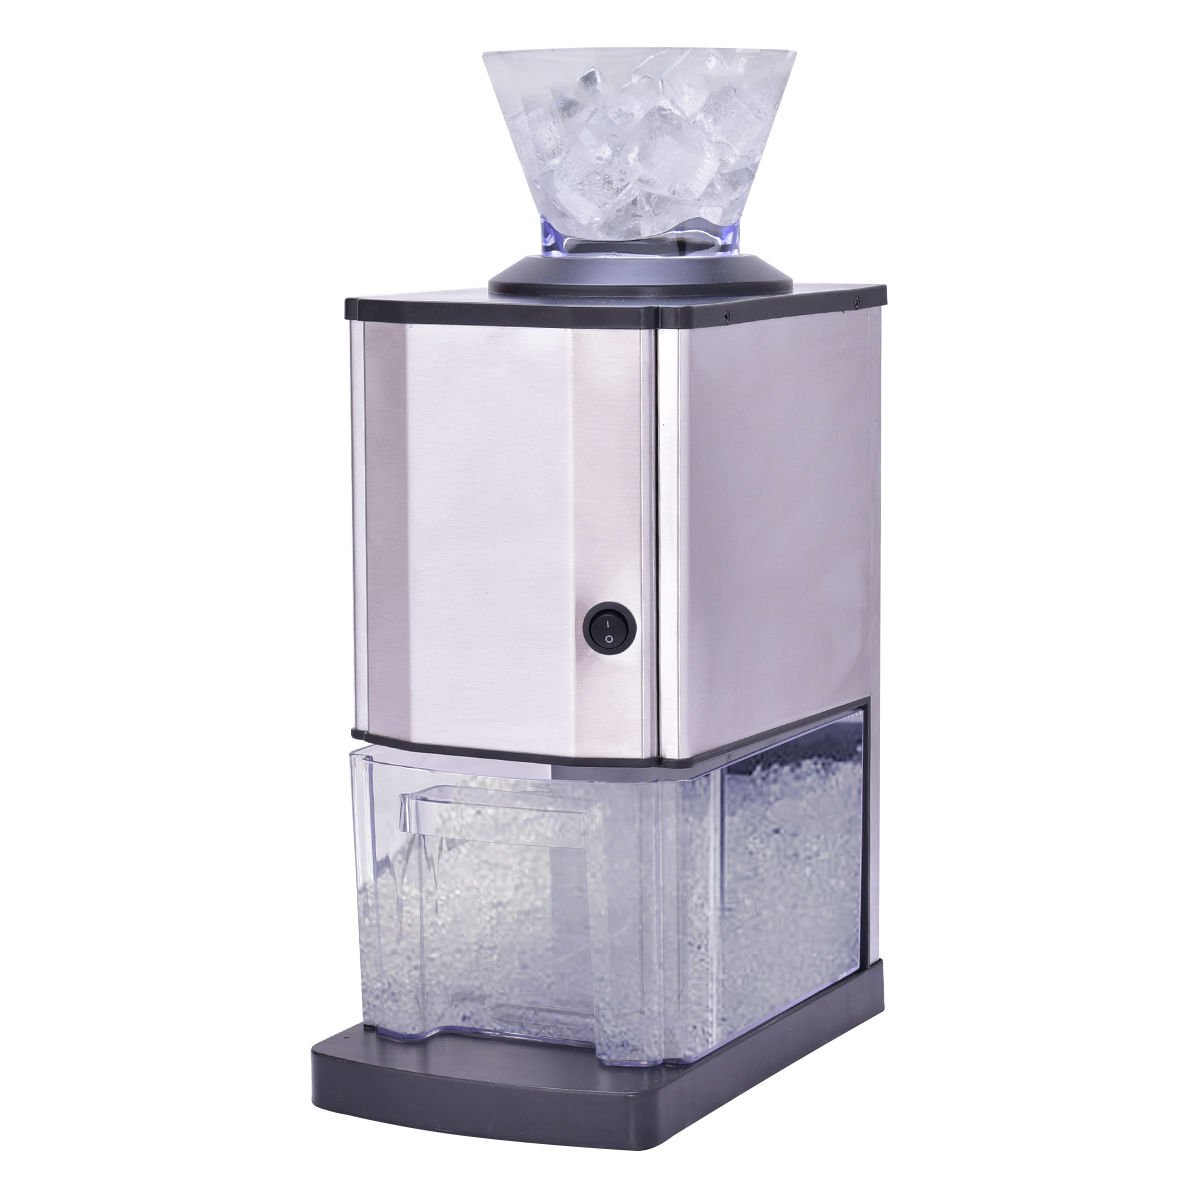 Costzon Electric Ice Crusher, Stainless Steel Snow Cone Shaver